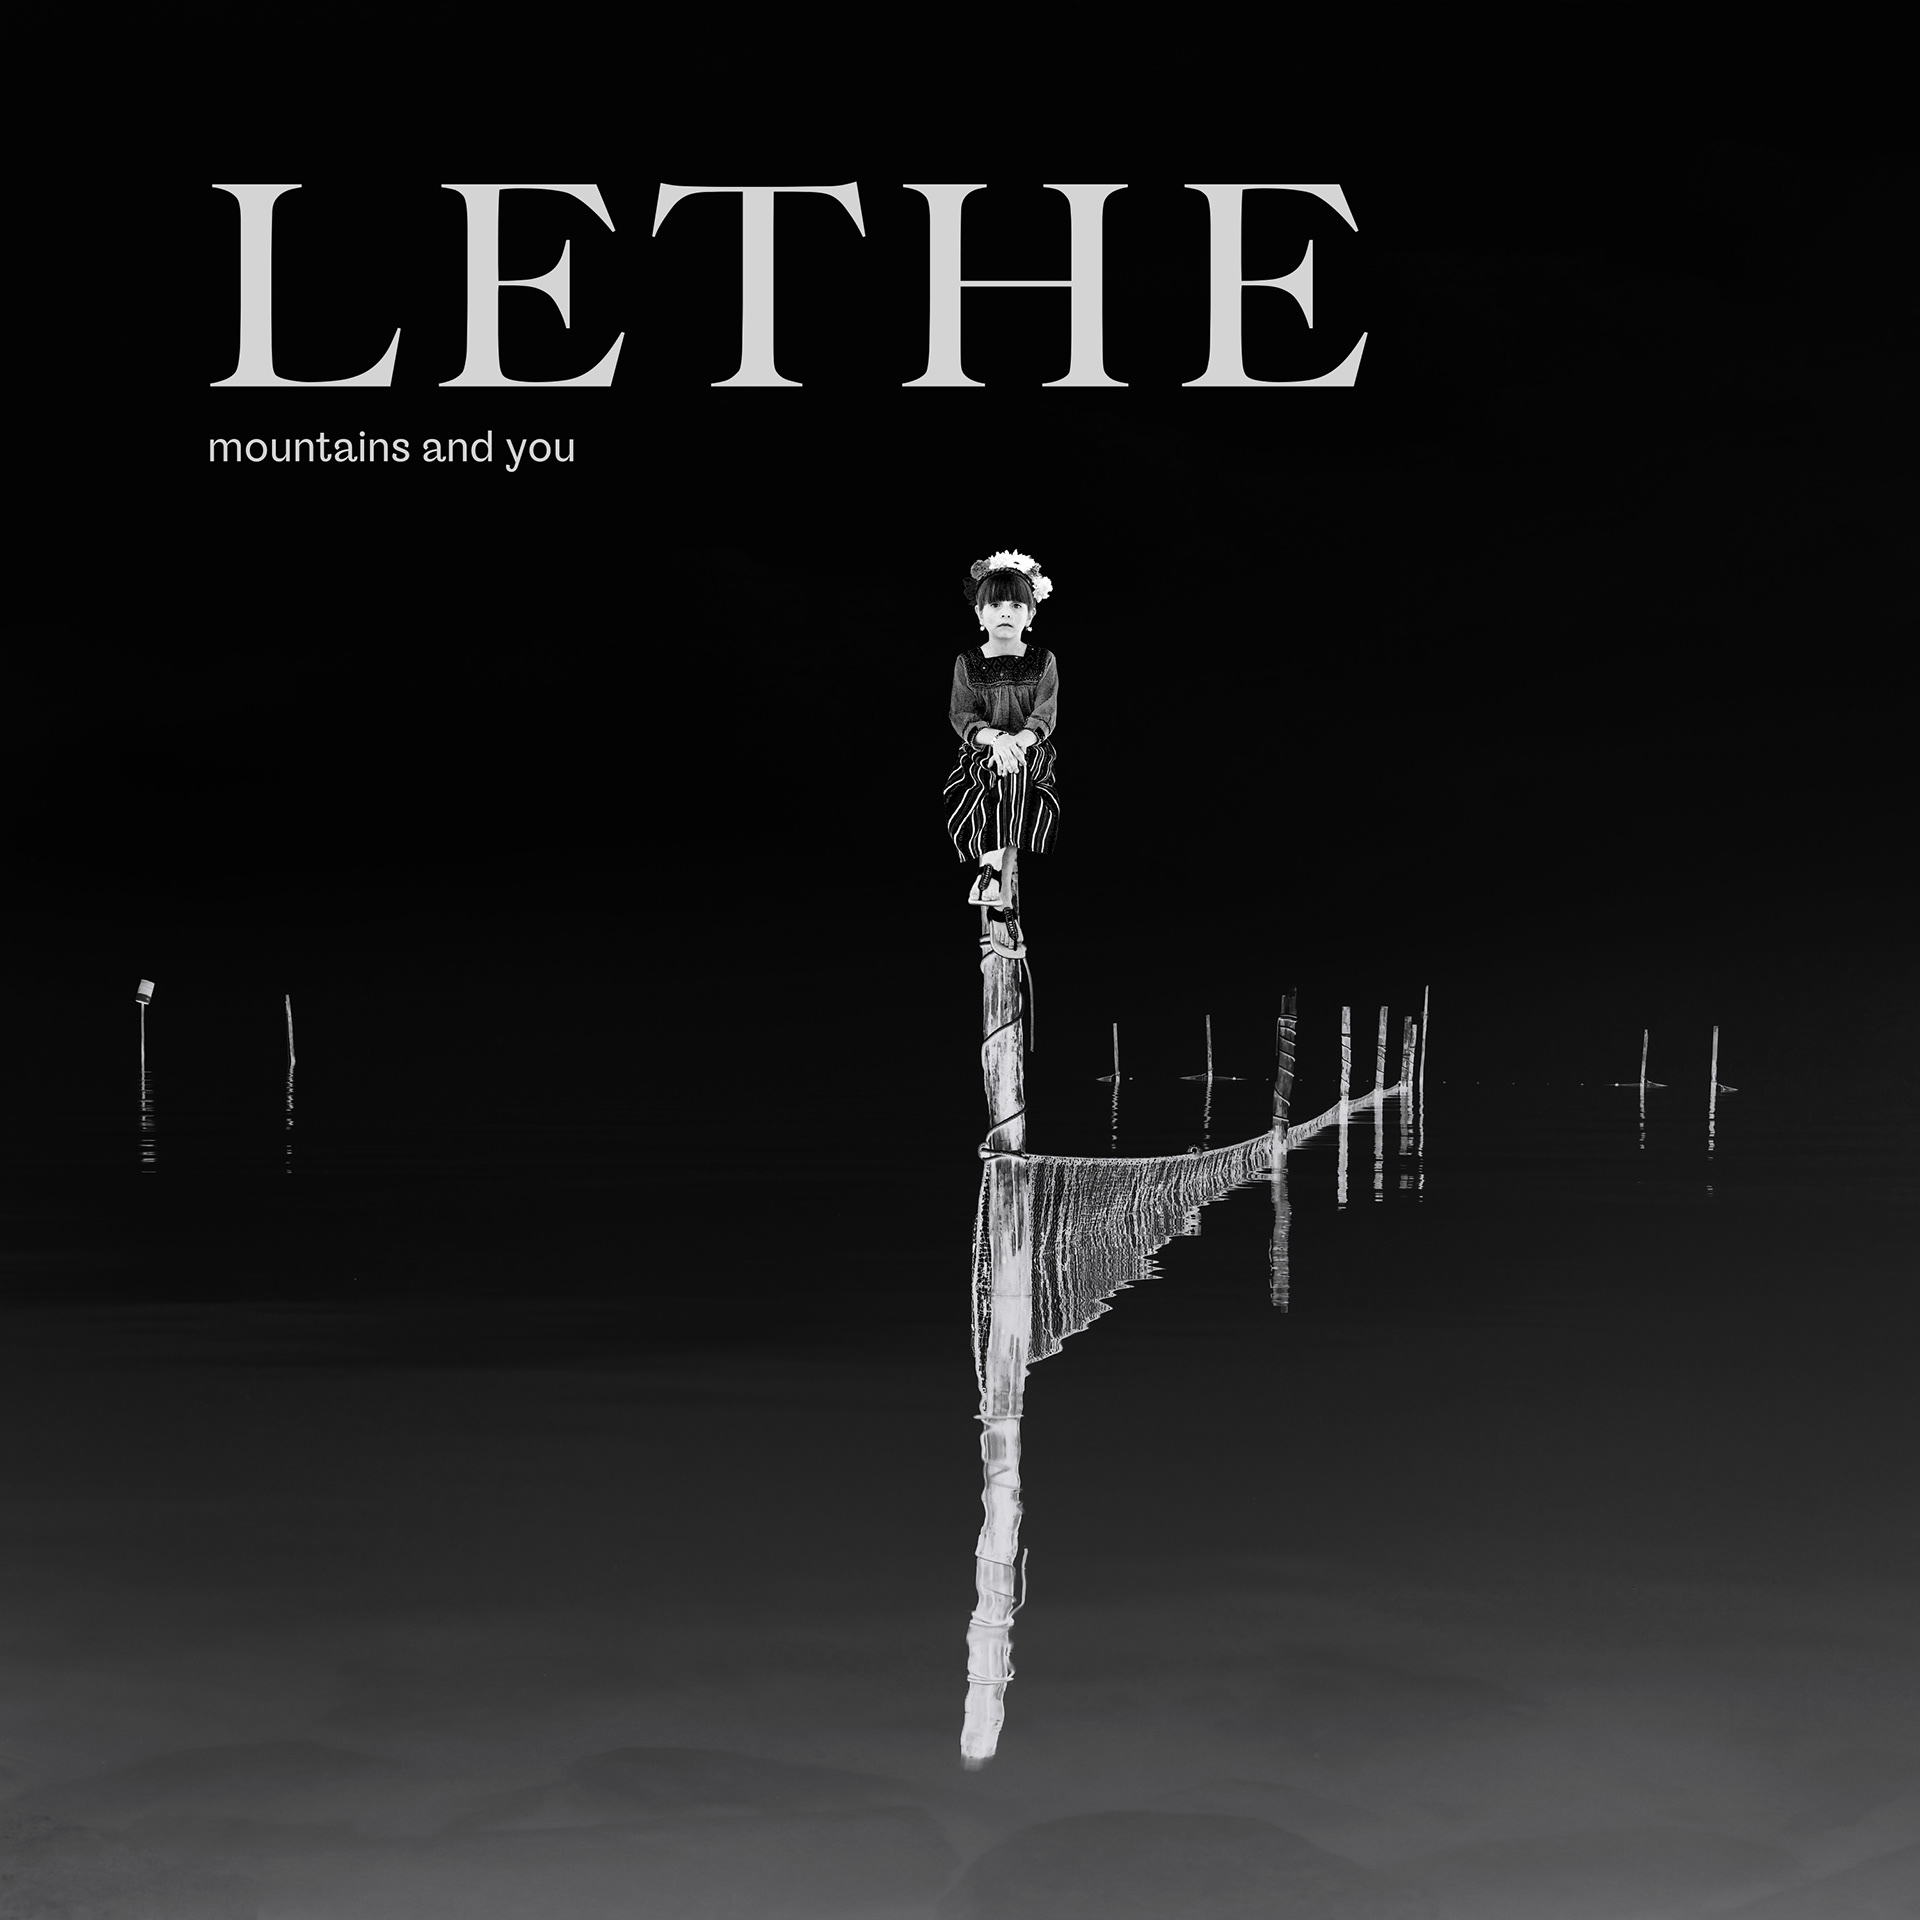 lethe river of forgetfulness. lethe is the second ep by rock band mountains and you. revolving around themes of enjoying ordinary, goodbyes fresh starts, a compelling river forgetfulness